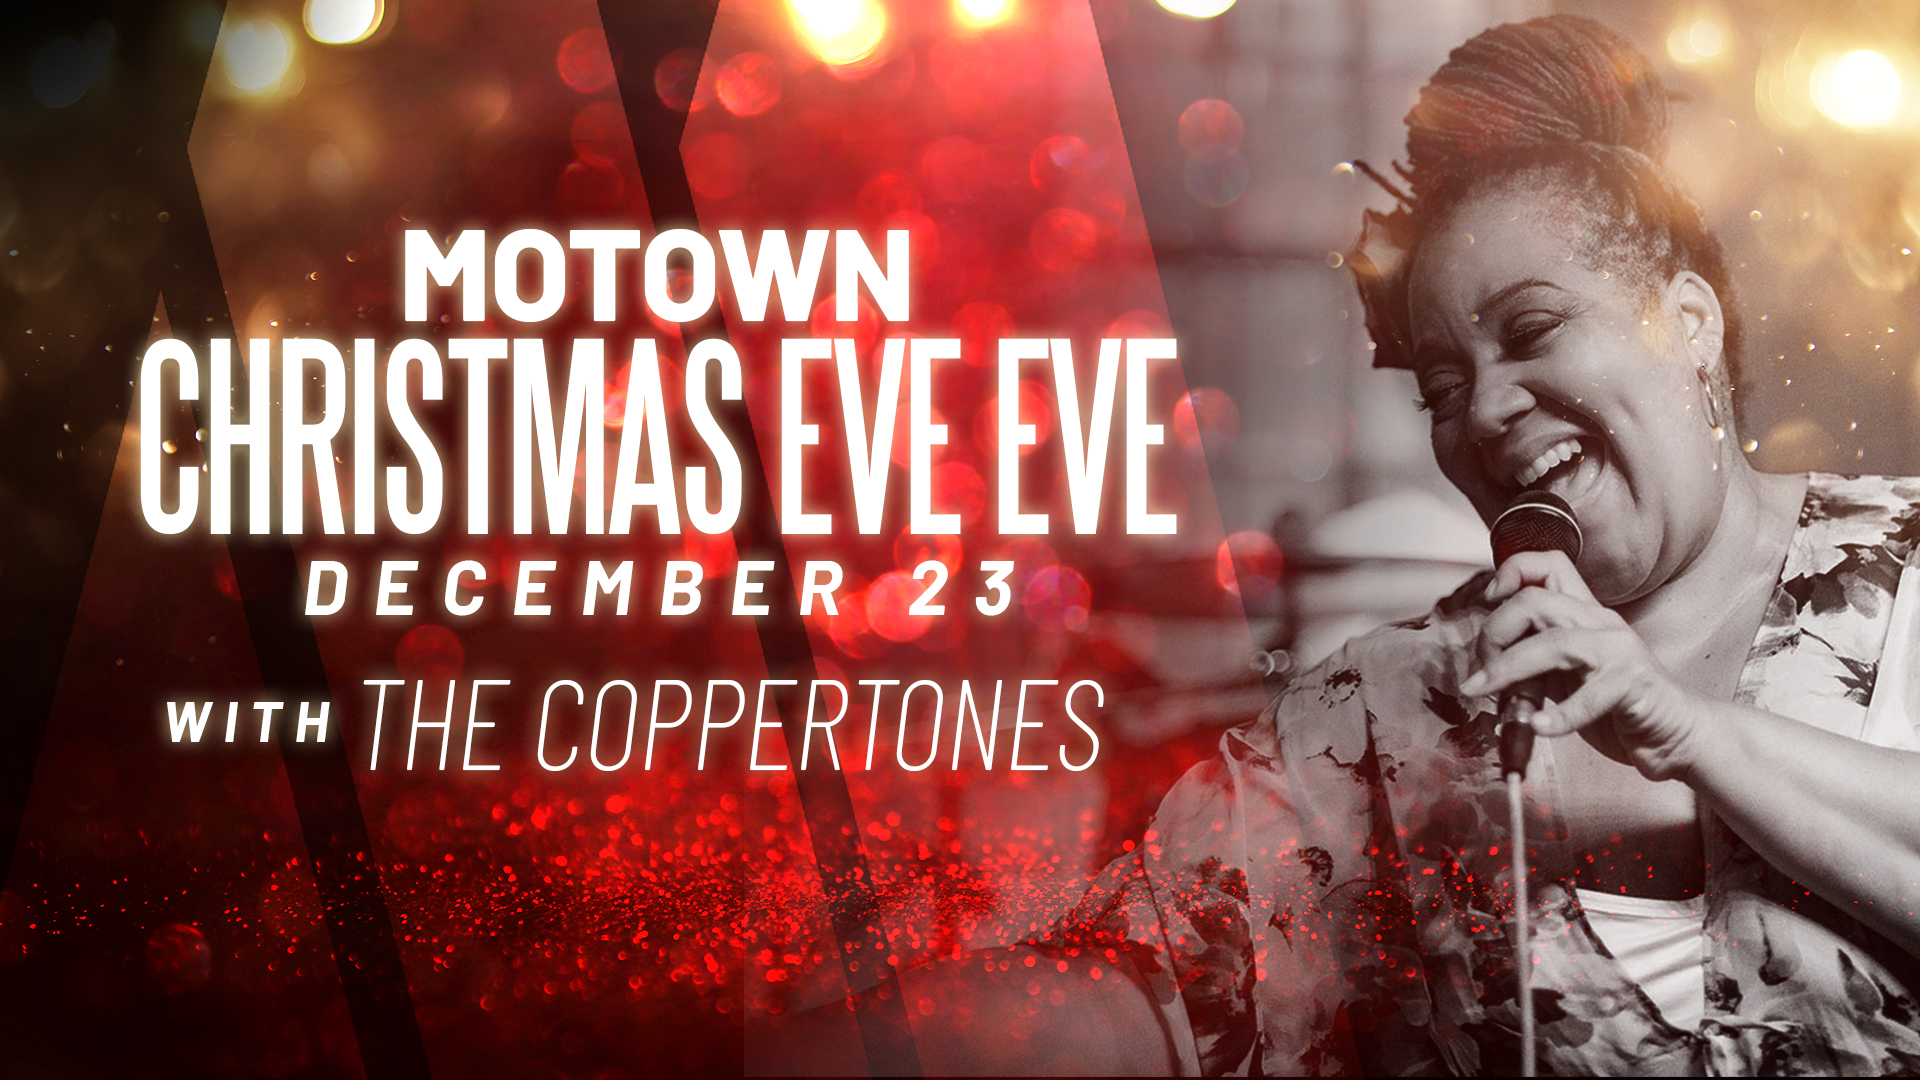 Promo image of Motown Christmas Eve Eve with The Coppertones